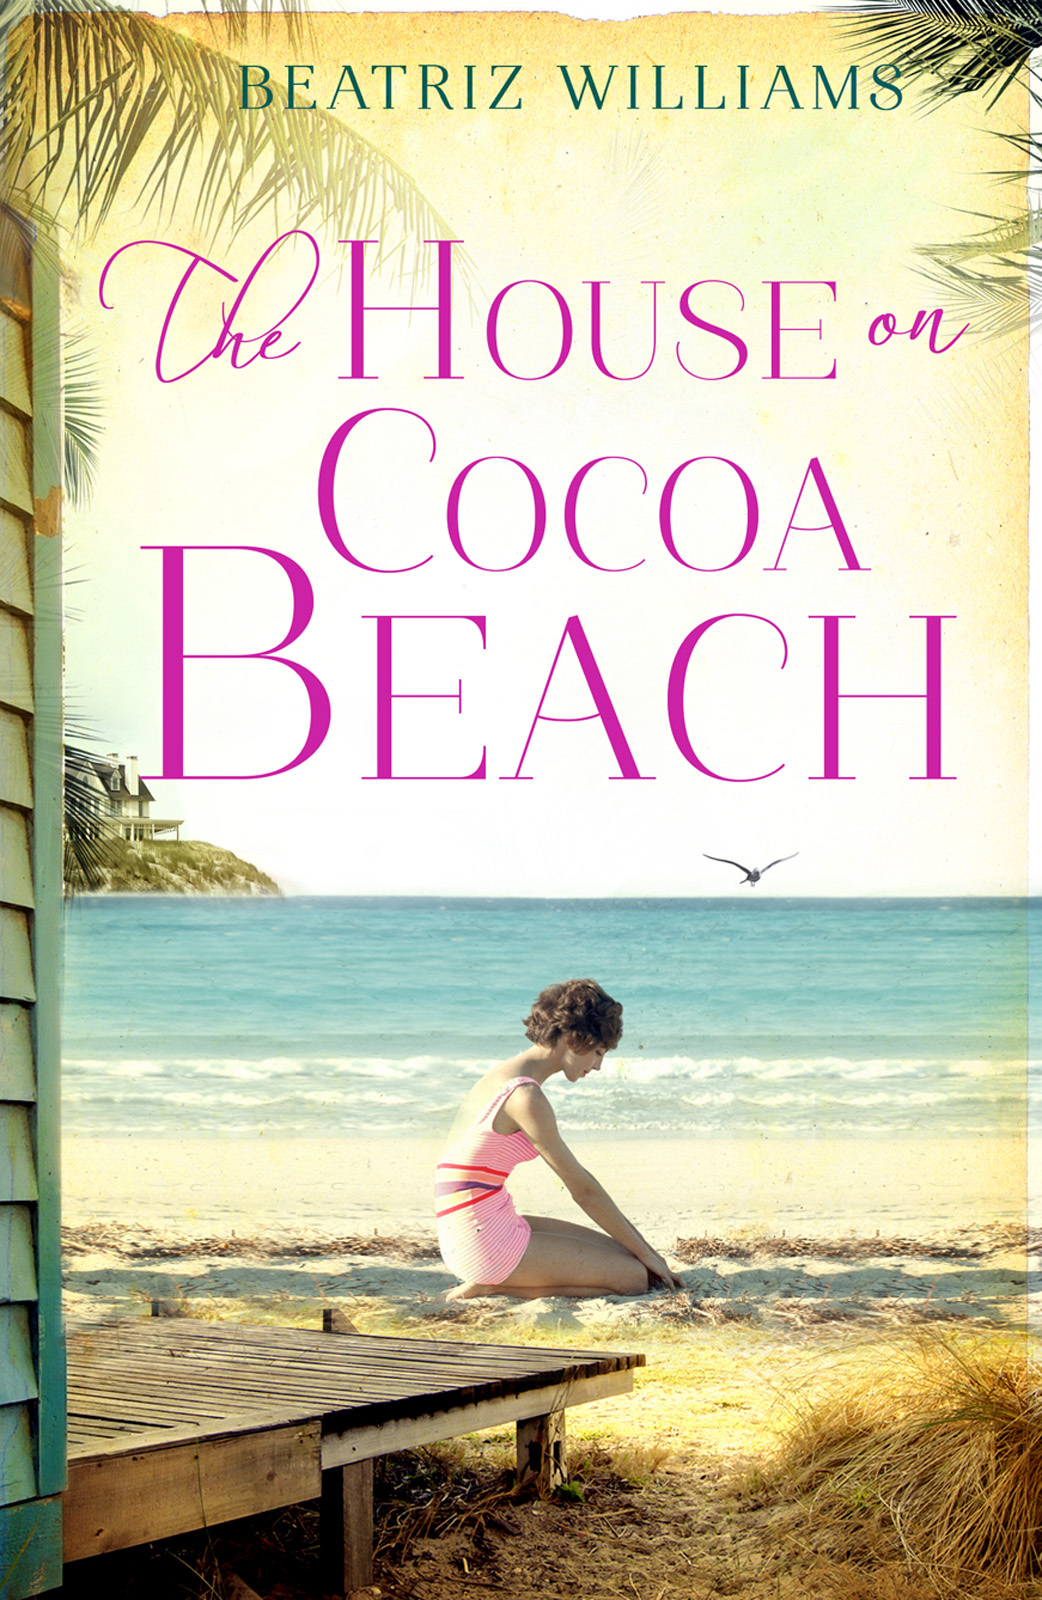 Beatriz Williams The House on Cocoa Beach: A sweeping epic love story, perfect for fans of historical romance tommaso pincio love shaped story